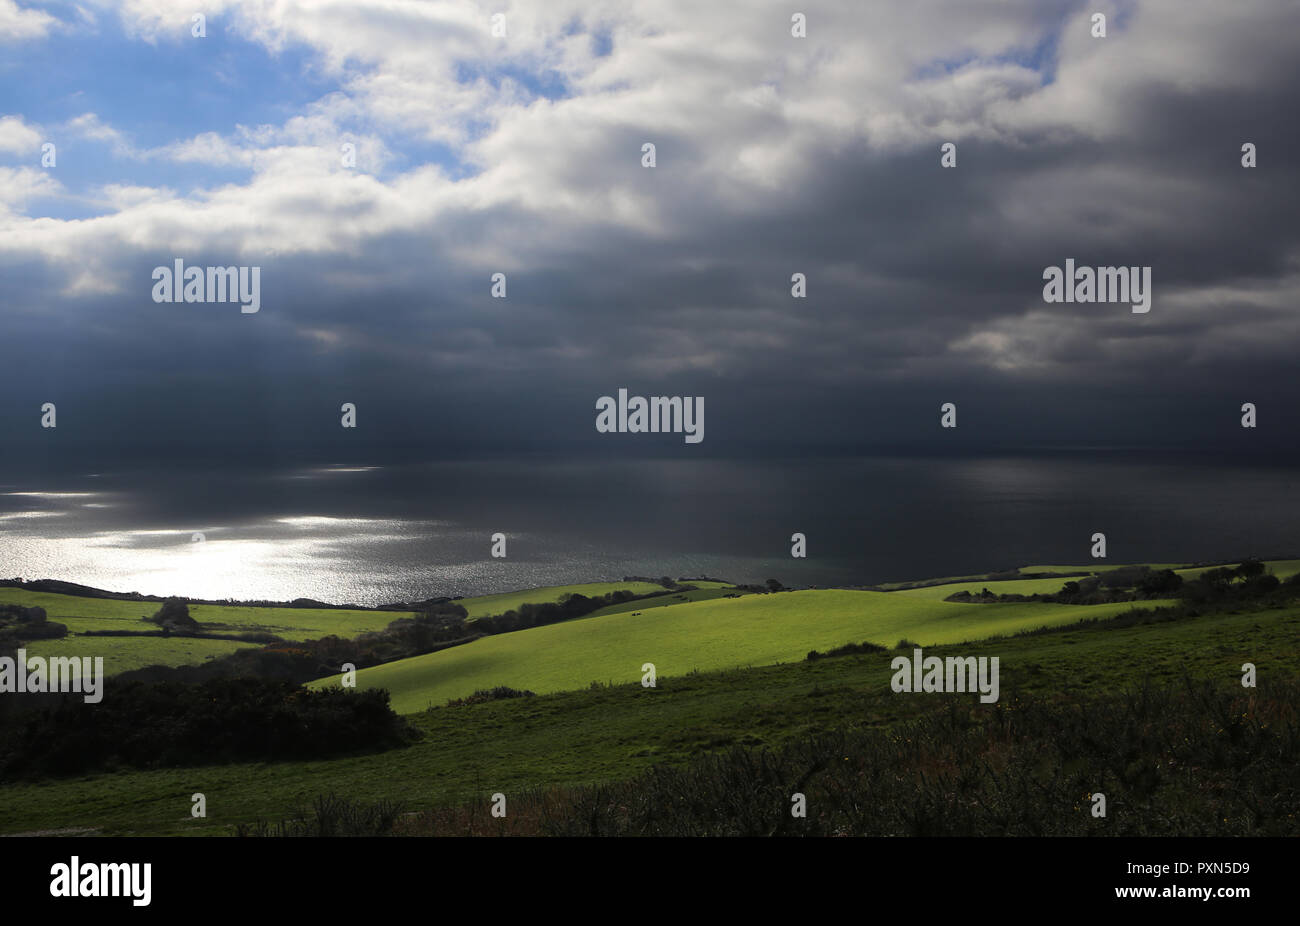 Sun shining through clouds onto green field on Dorset coast - Stock Image